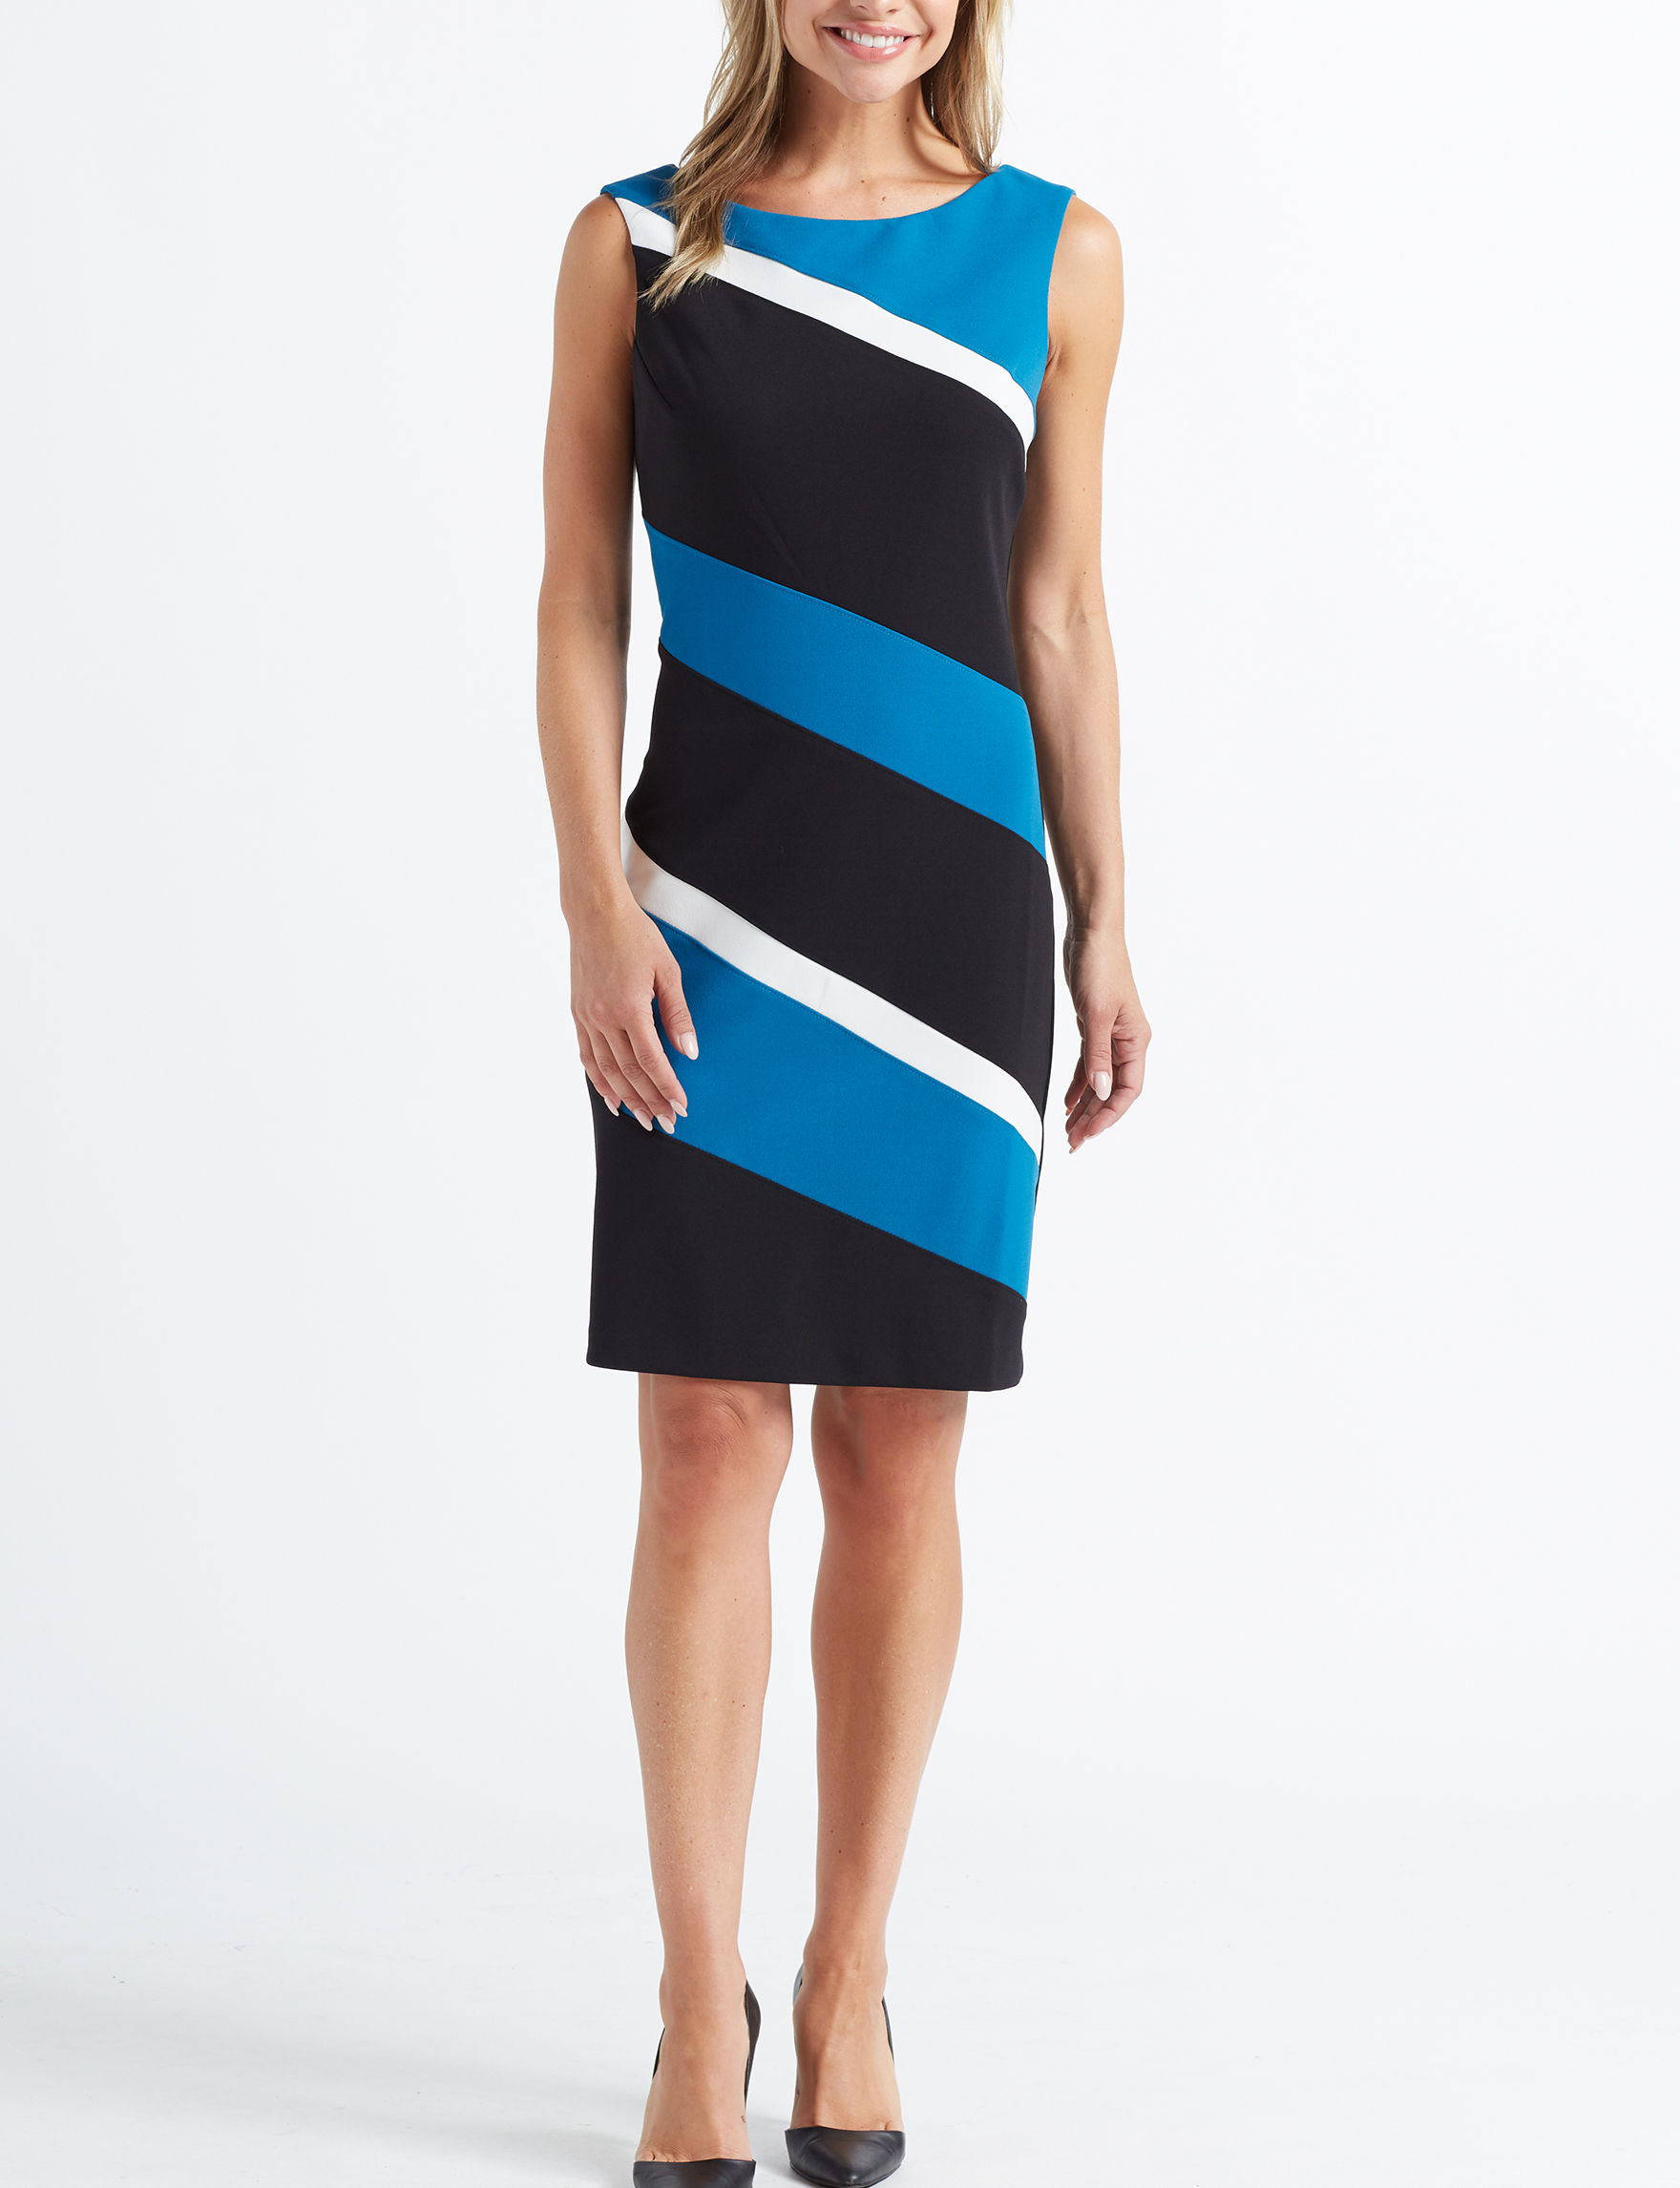 Connected Blue / White / Black Everyday & Casual Sheath Dresses